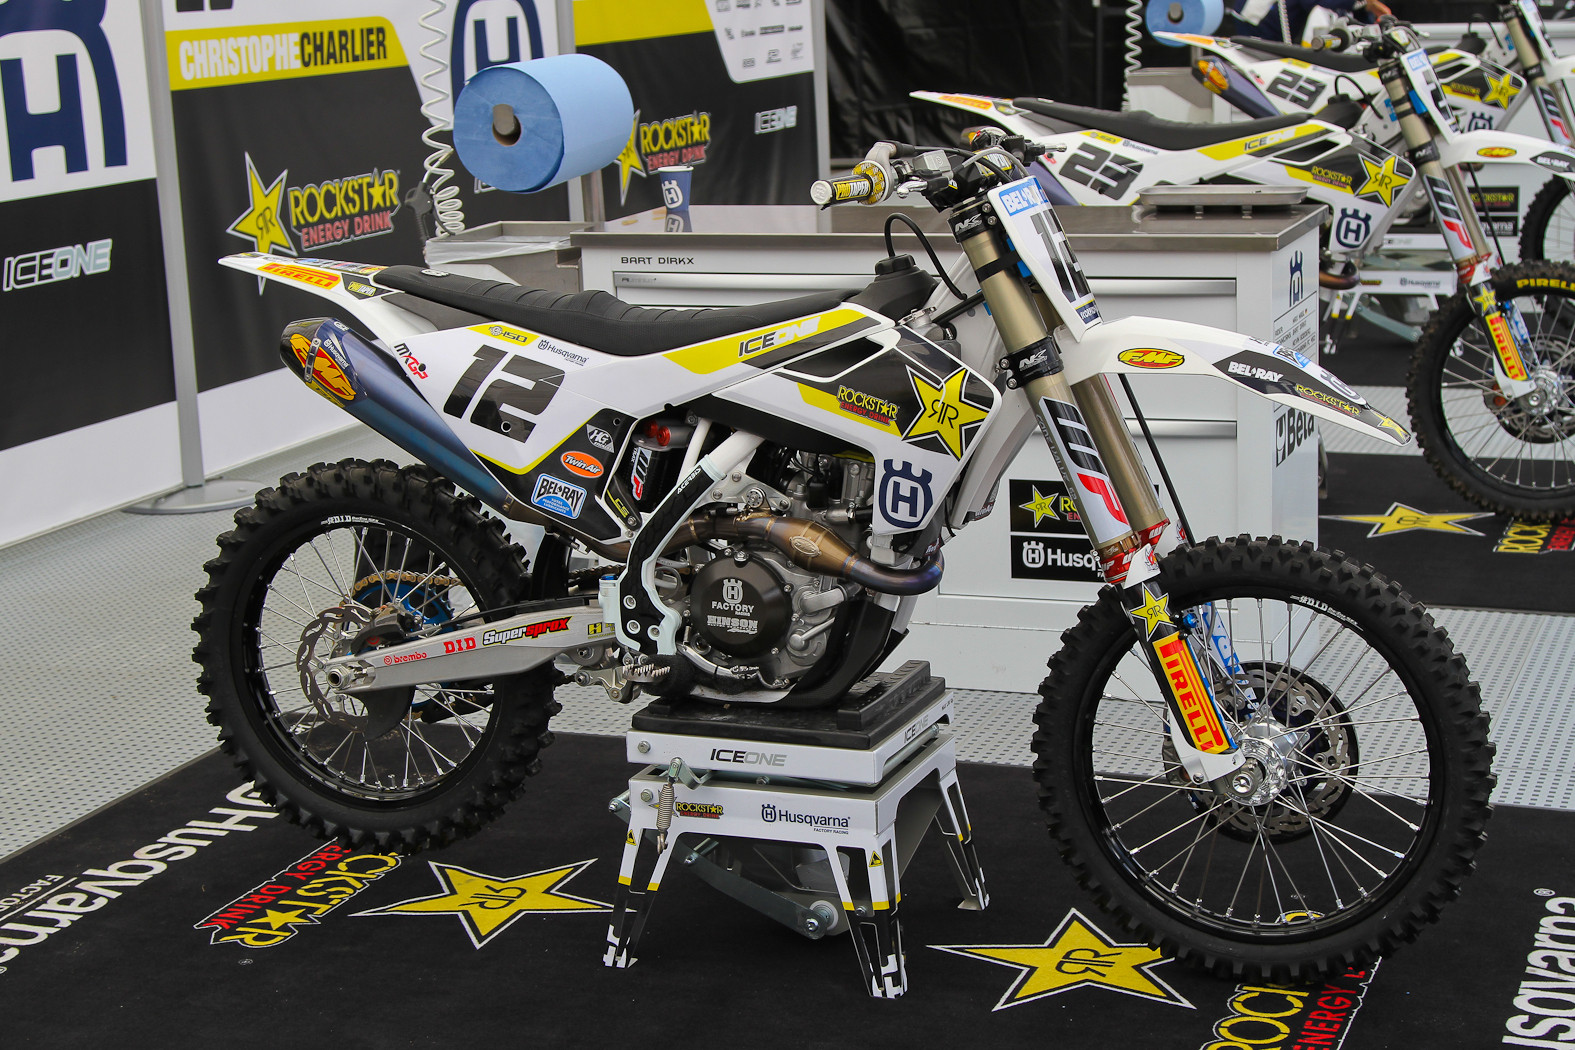 Max Nagl - In the Pits: MXGP of Europe - Motocross Pictures - Vital MX